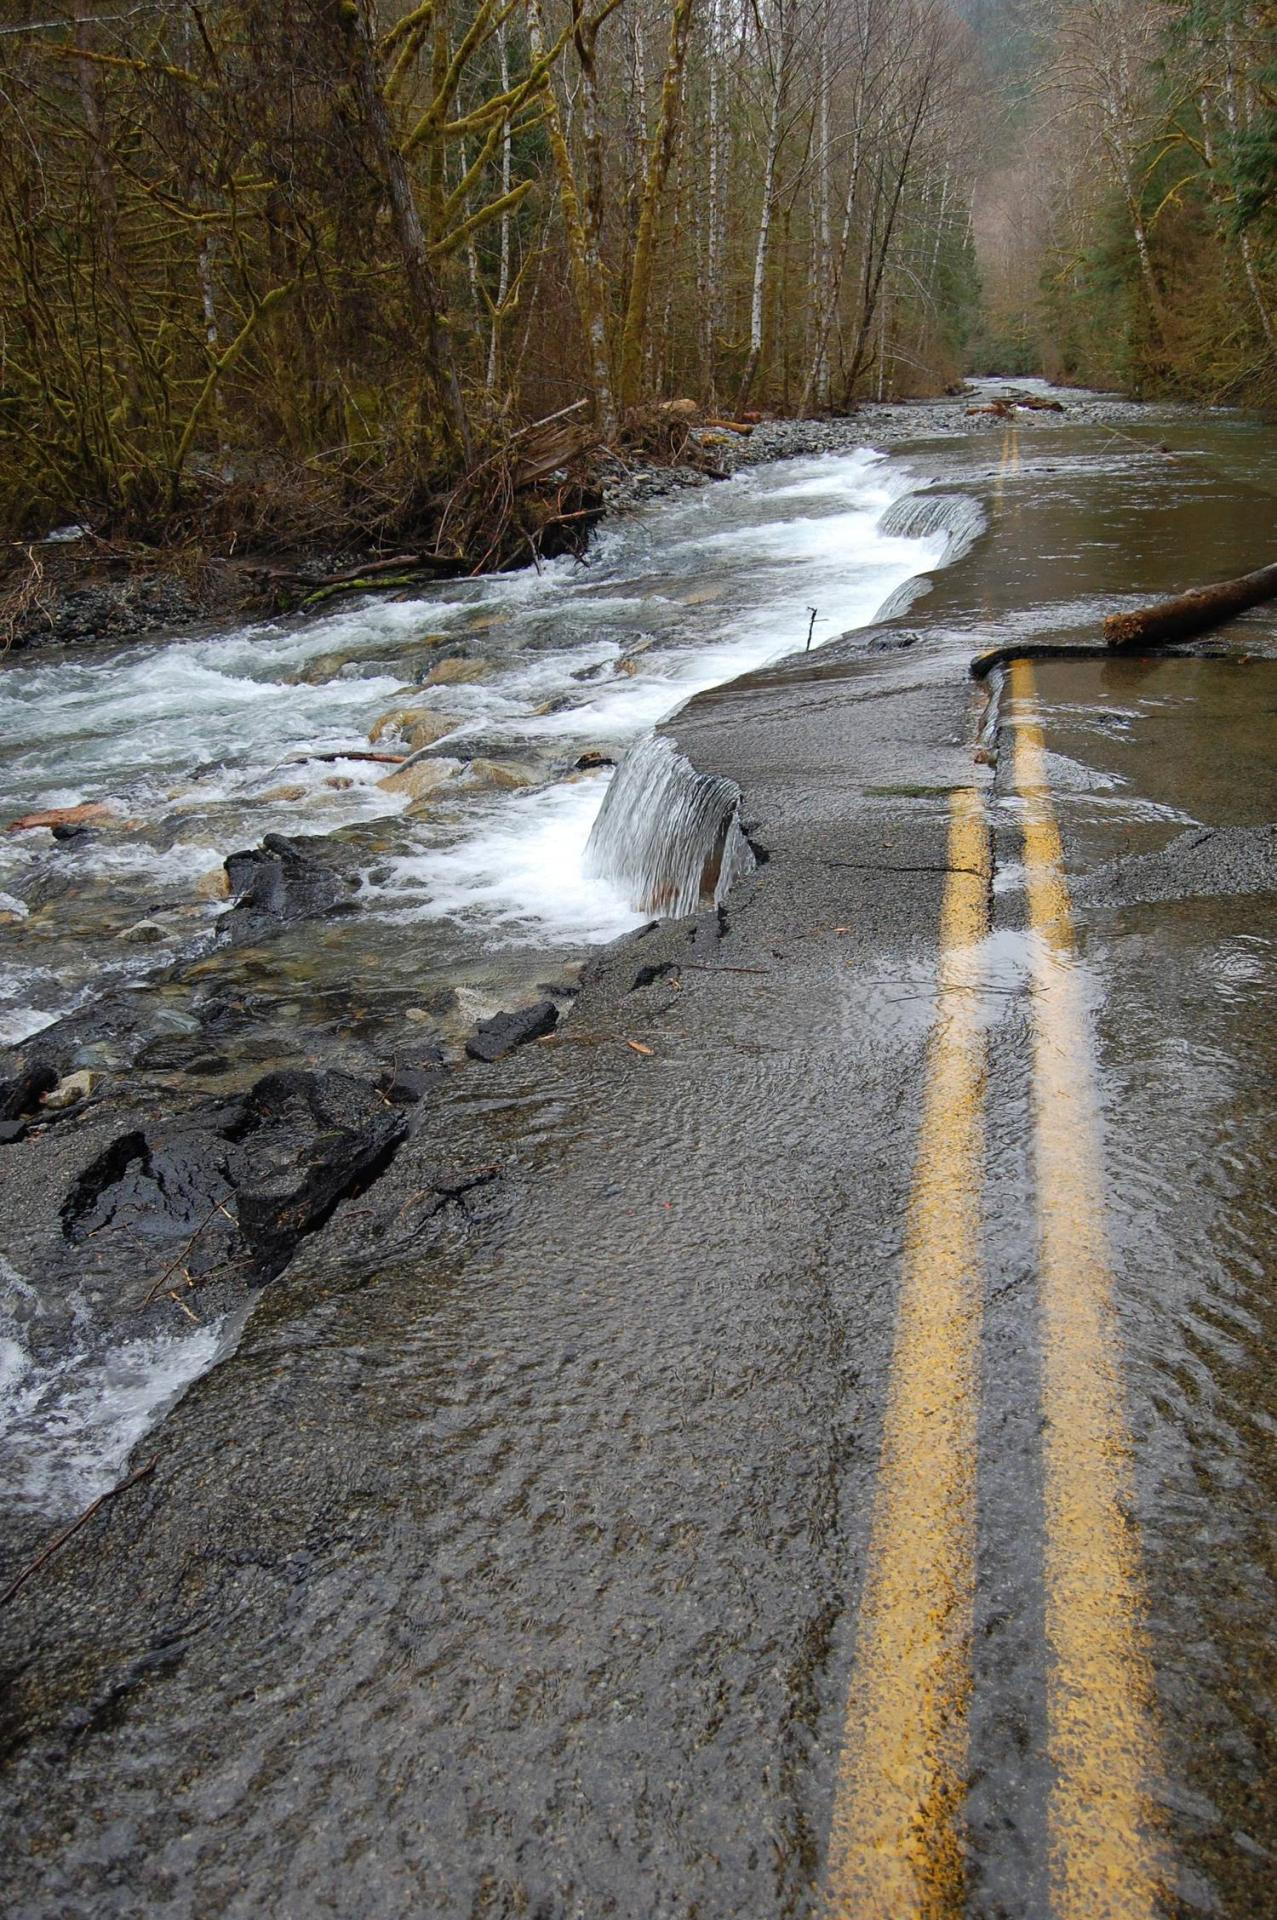 lividula:  gnostic-forest:  architectureofdoom:  Road washed out by flood, WA state.  This is so beautiful  Officially my new favorite picture in the whole world.